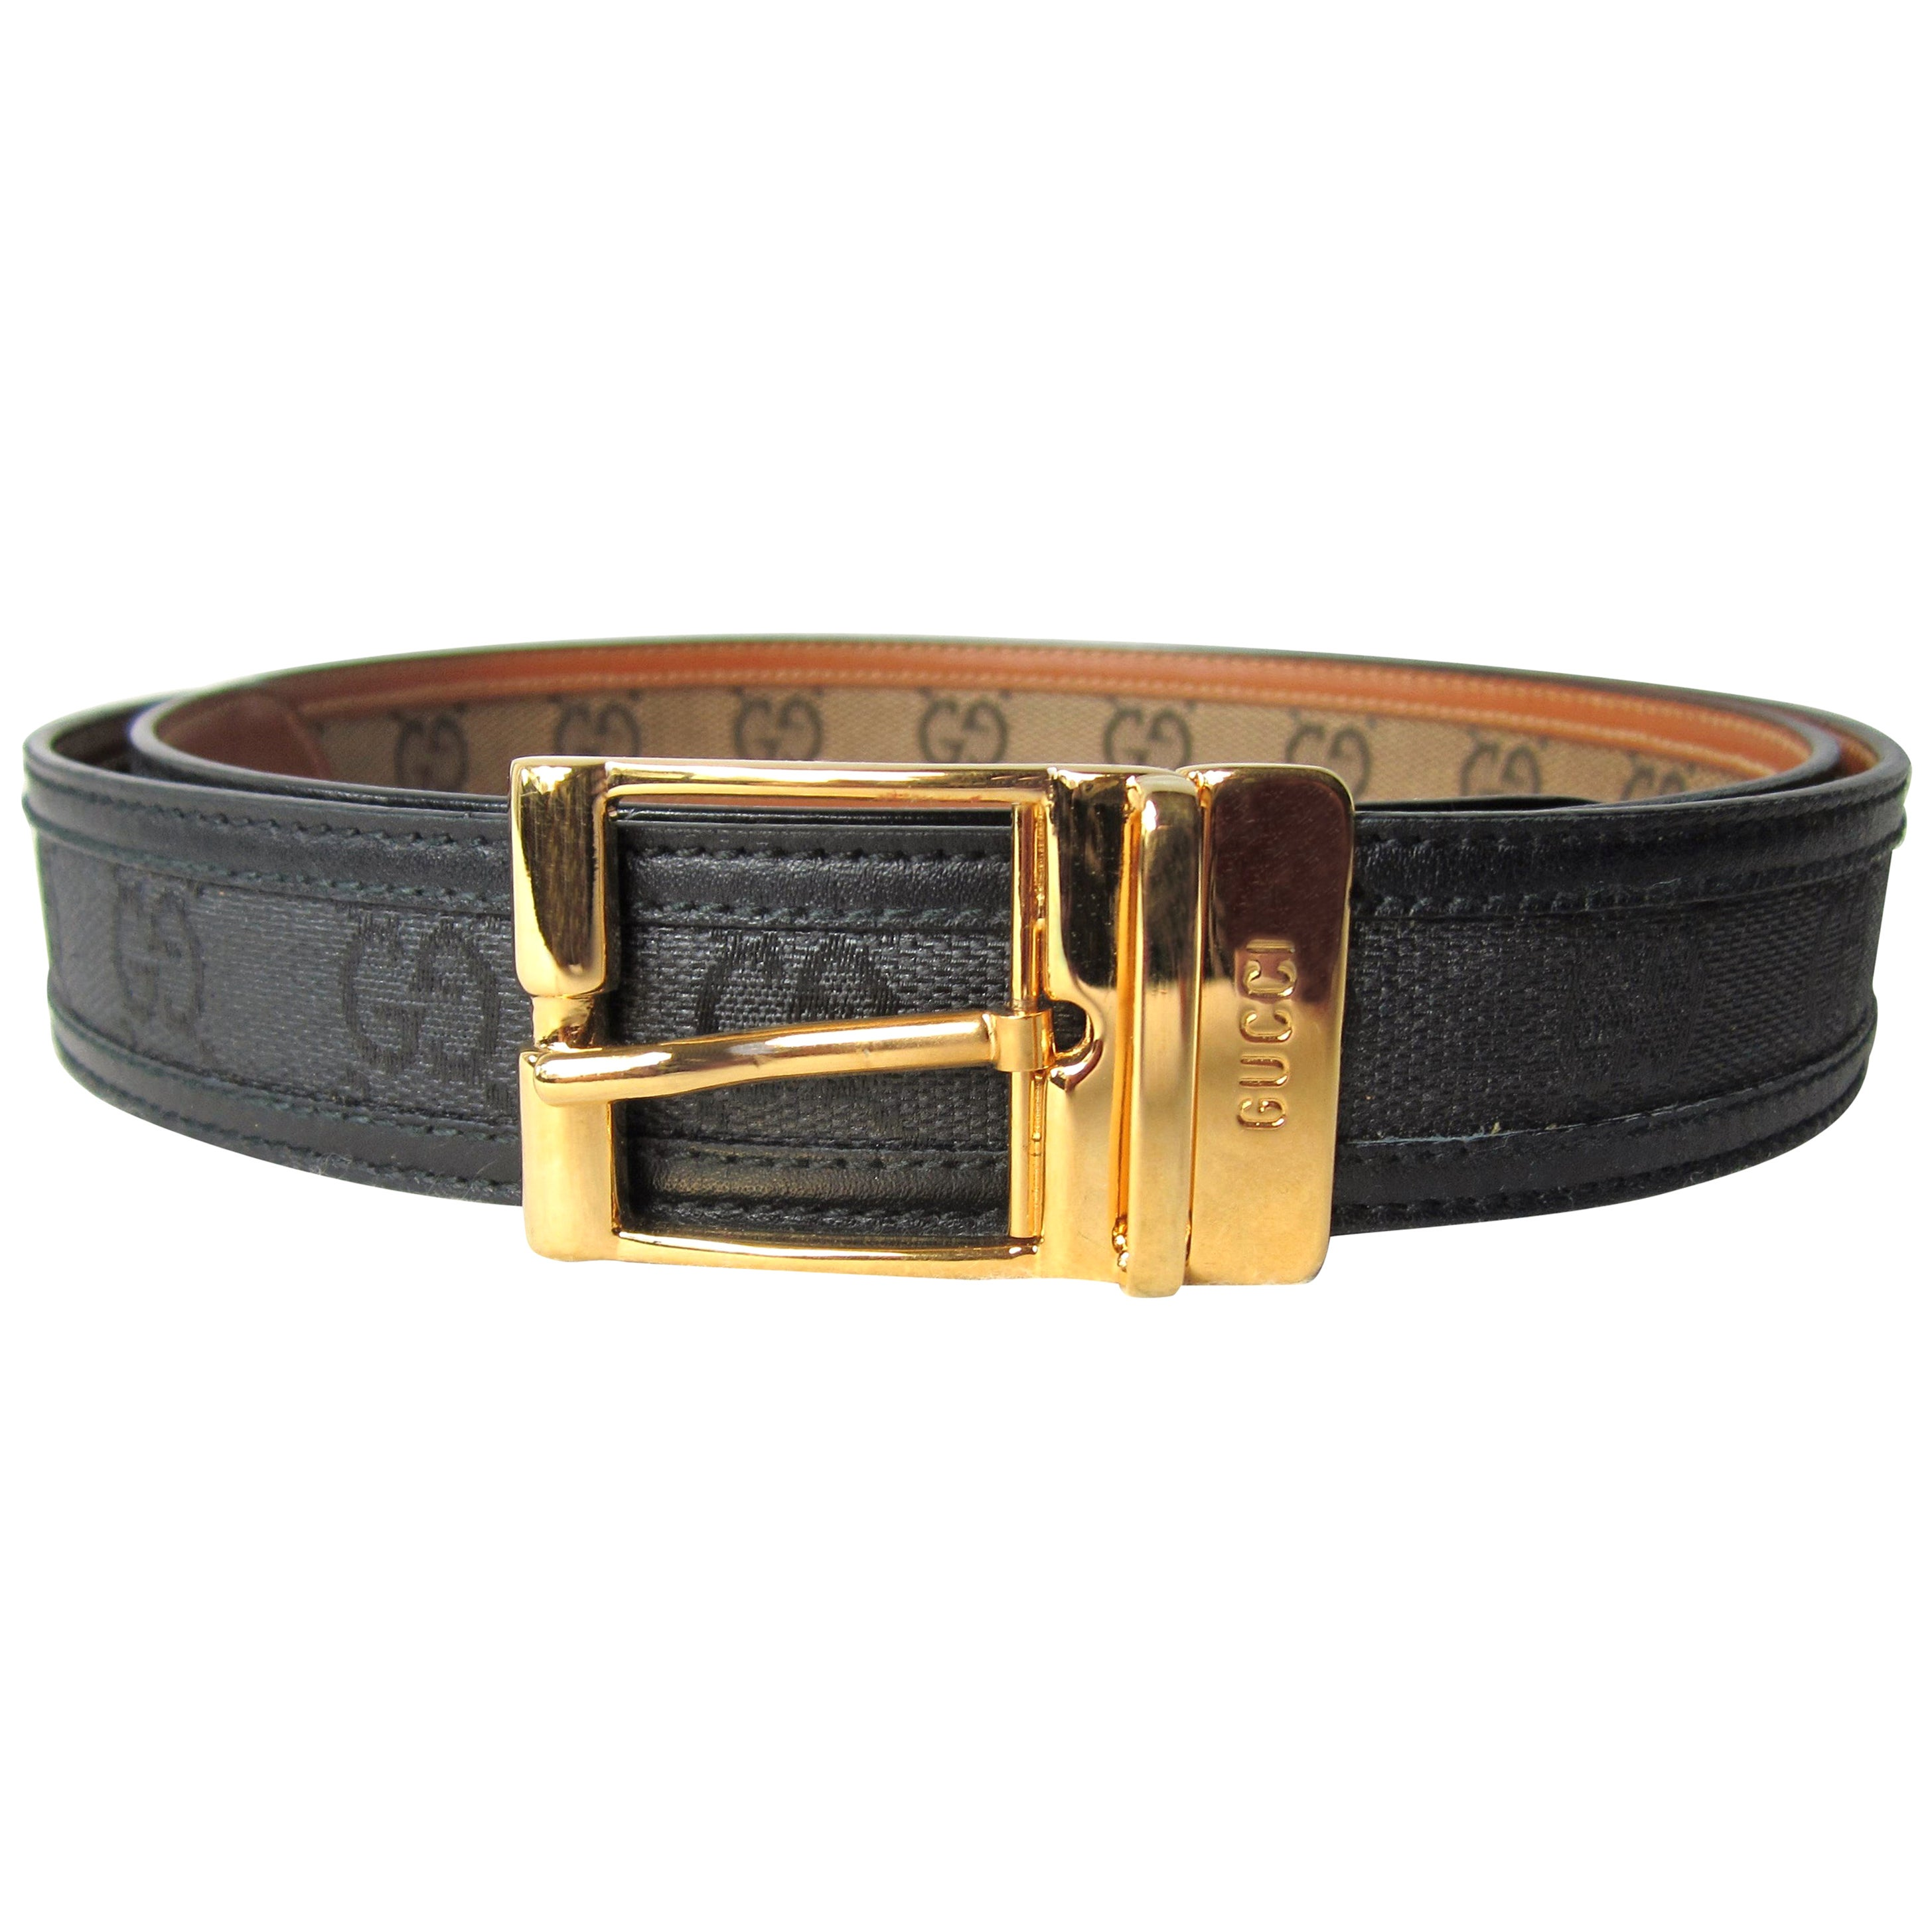 Gucci Black Signature GG Canvas & Leather Belt Never Worn w/ Tags Unisex 1990s